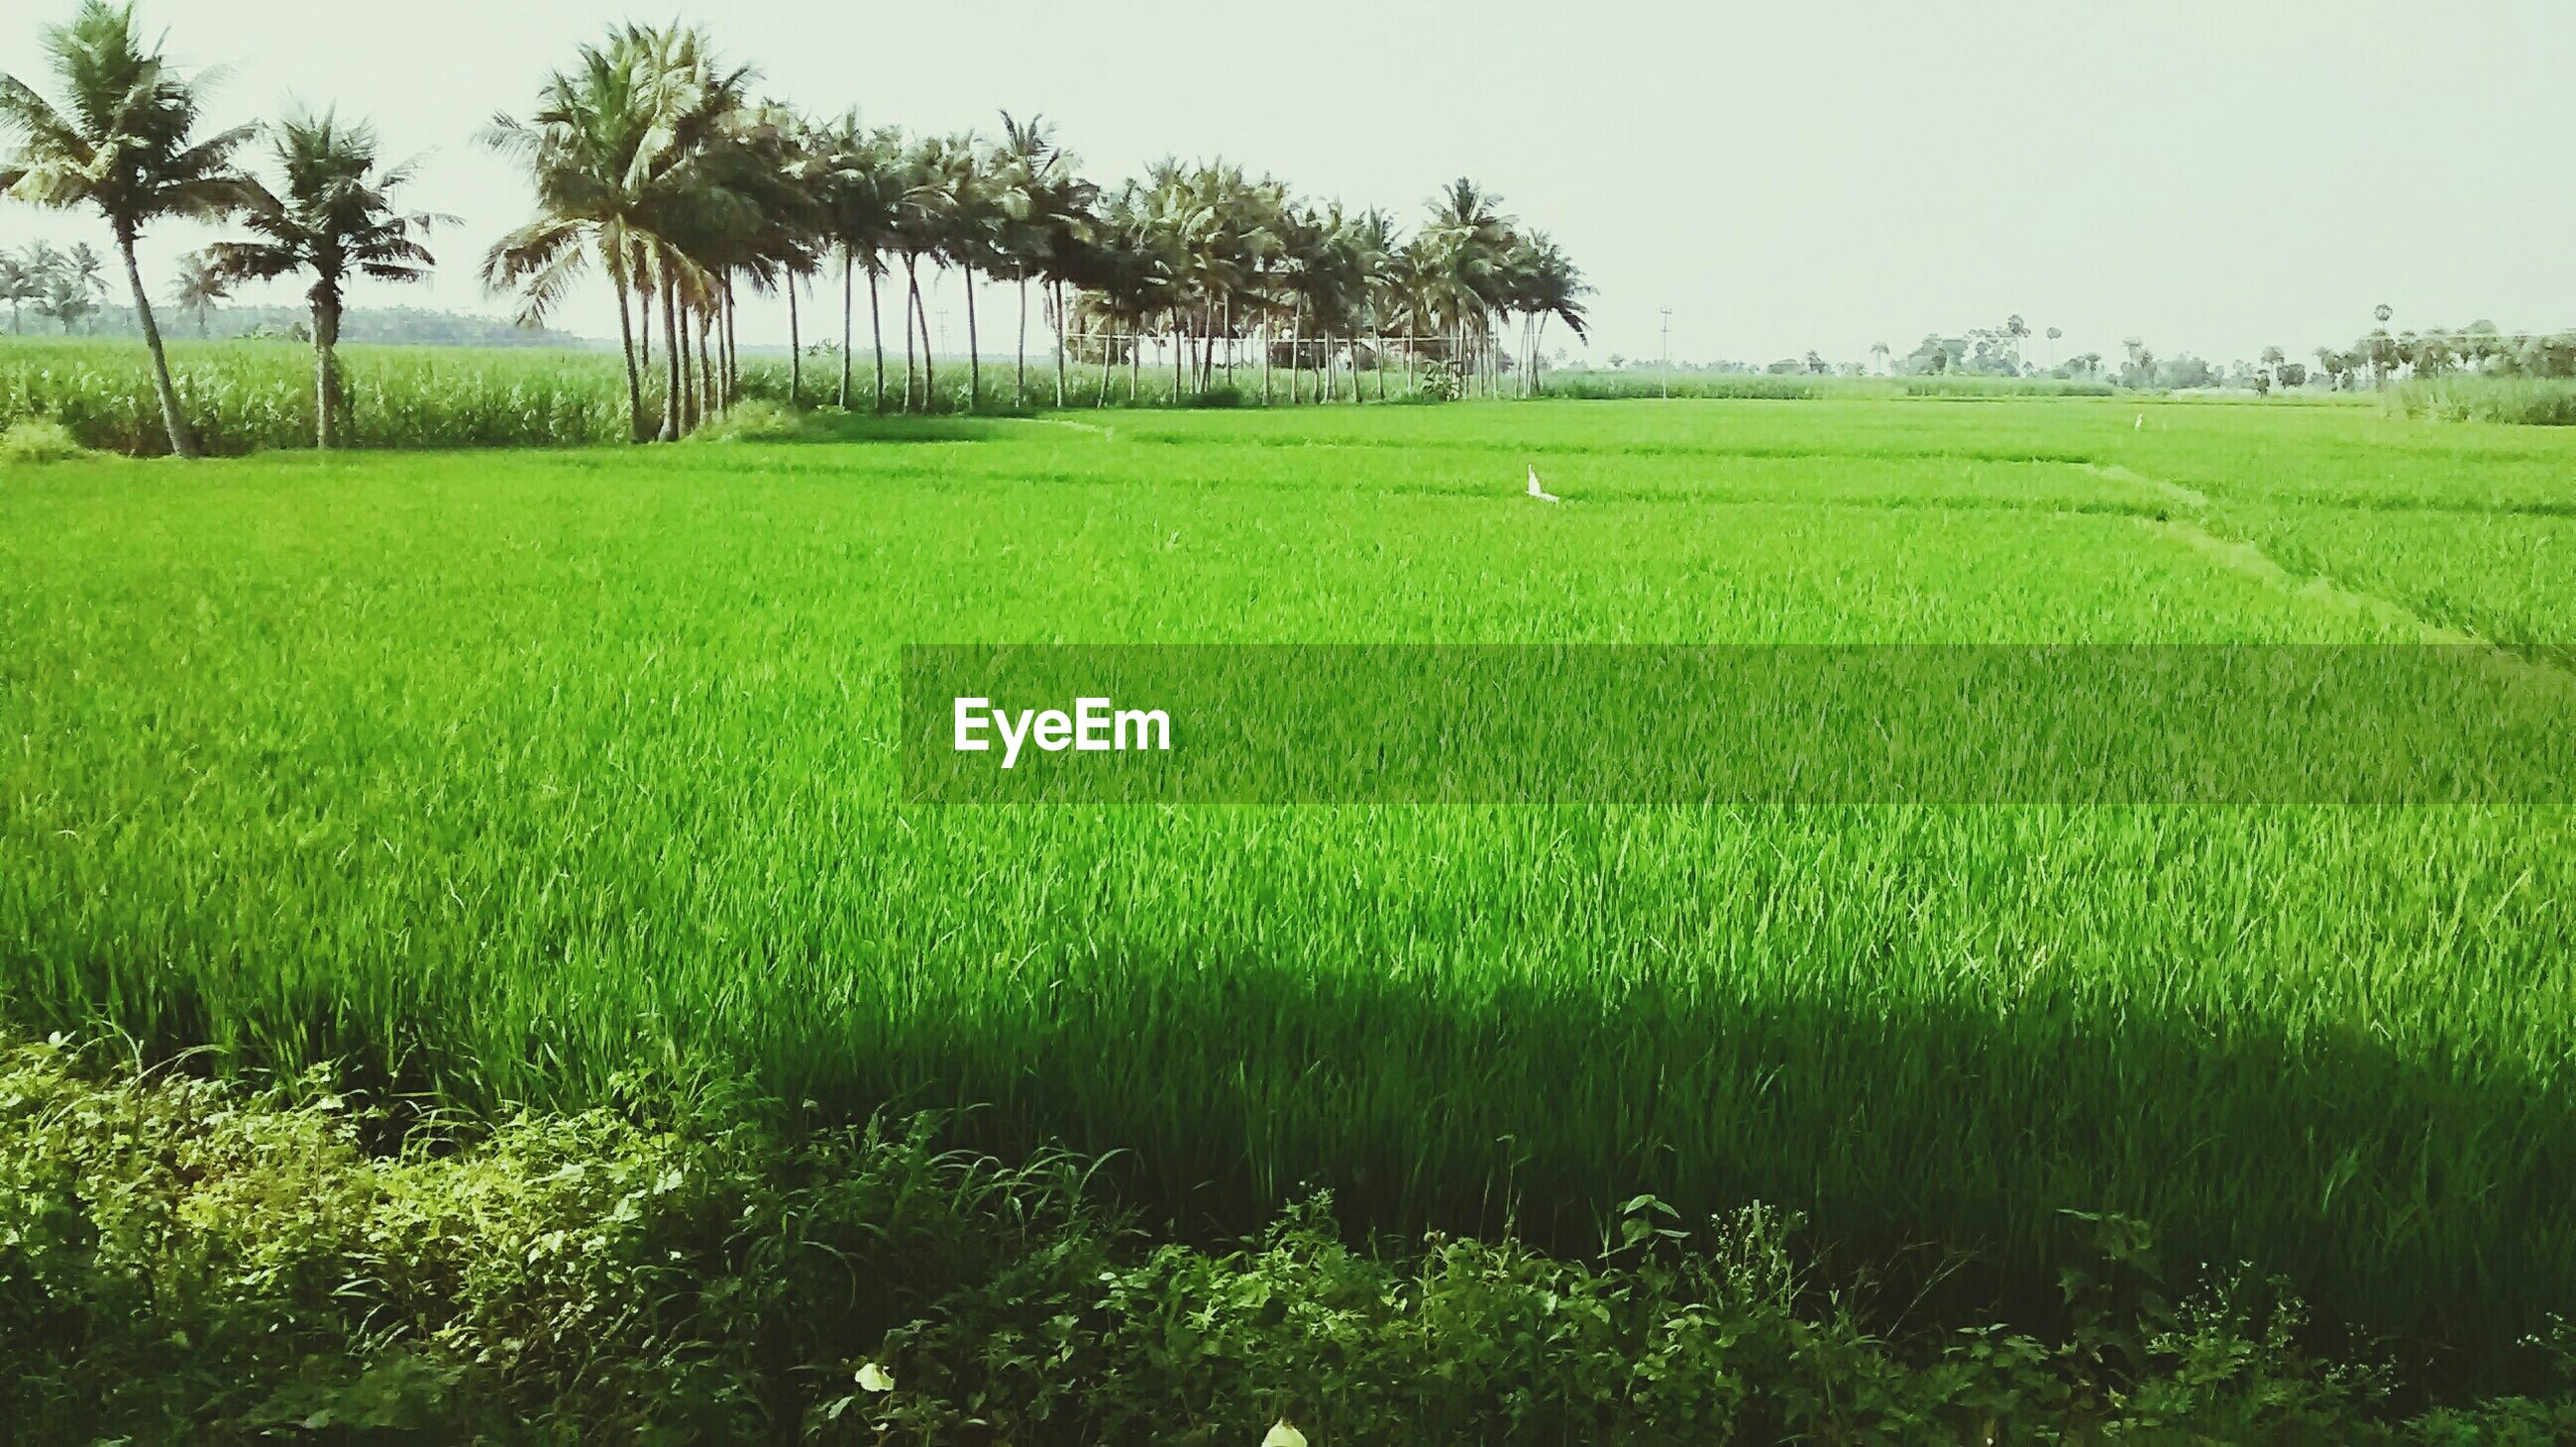 grass, green color, field, growth, tranquility, landscape, tranquil scene, beauty in nature, nature, grassy, tree, clear sky, scenics, rural scene, green, palm tree, agriculture, plant, day, outdoors